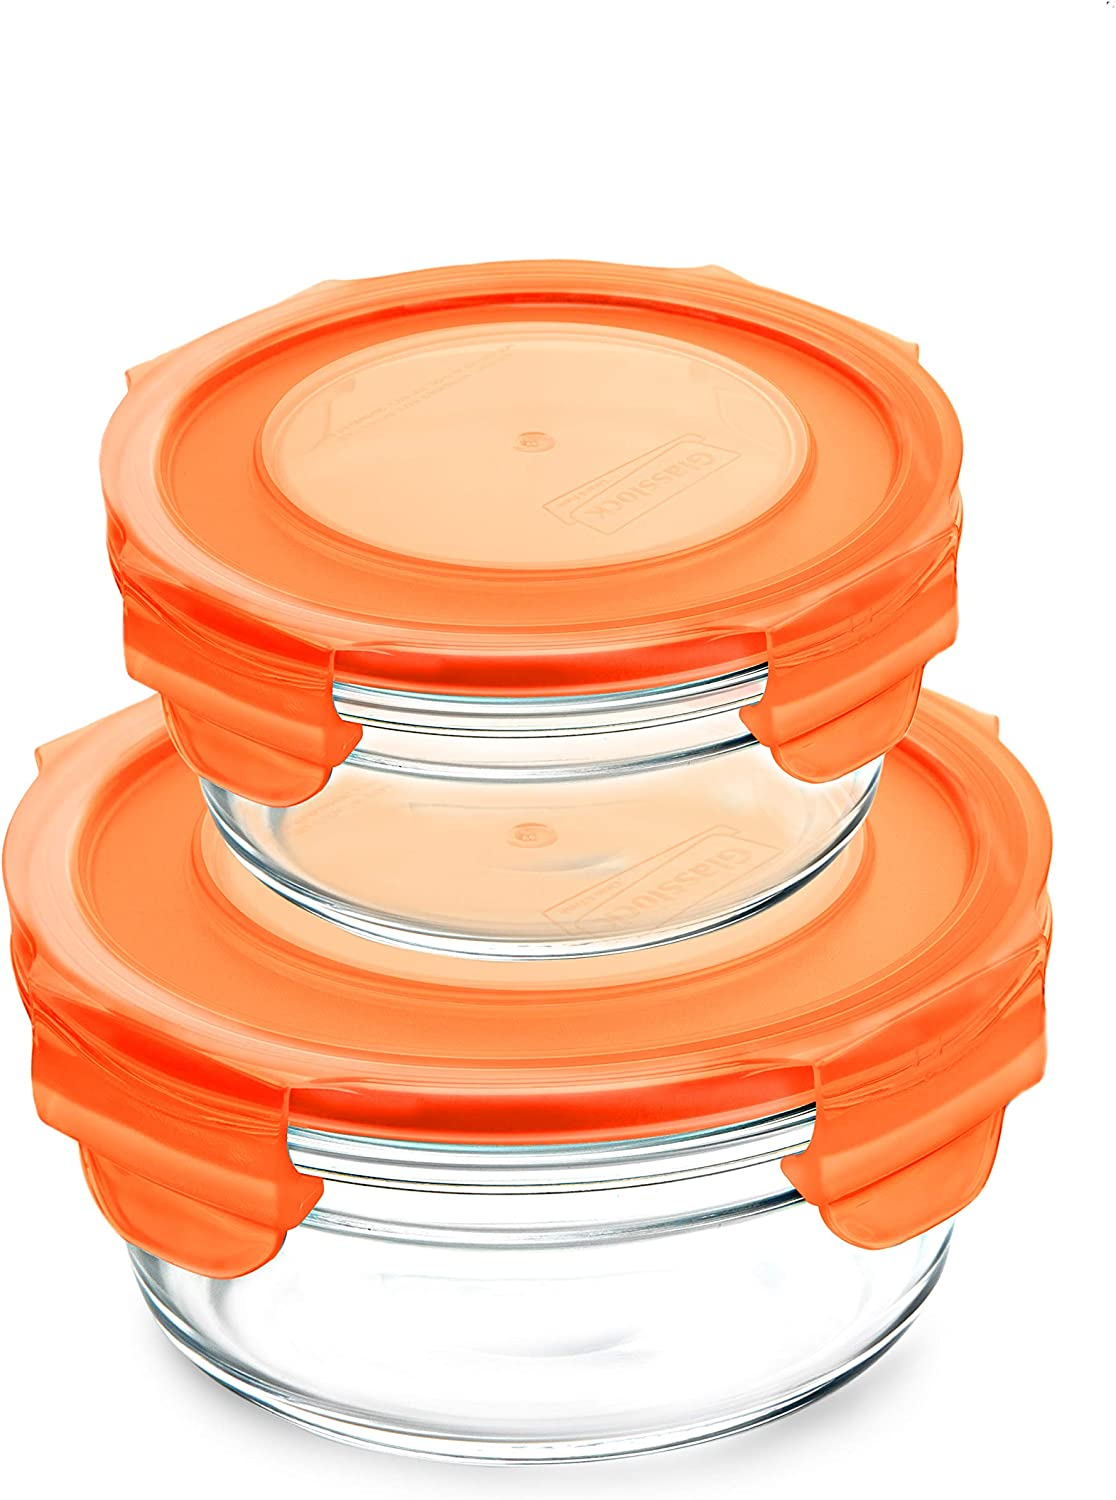 Snaplock Lid Tempered Glasslock Storage Round Containers 4pc set Combo with Orange Lid - Microwave & Oven Safe Spill Proof